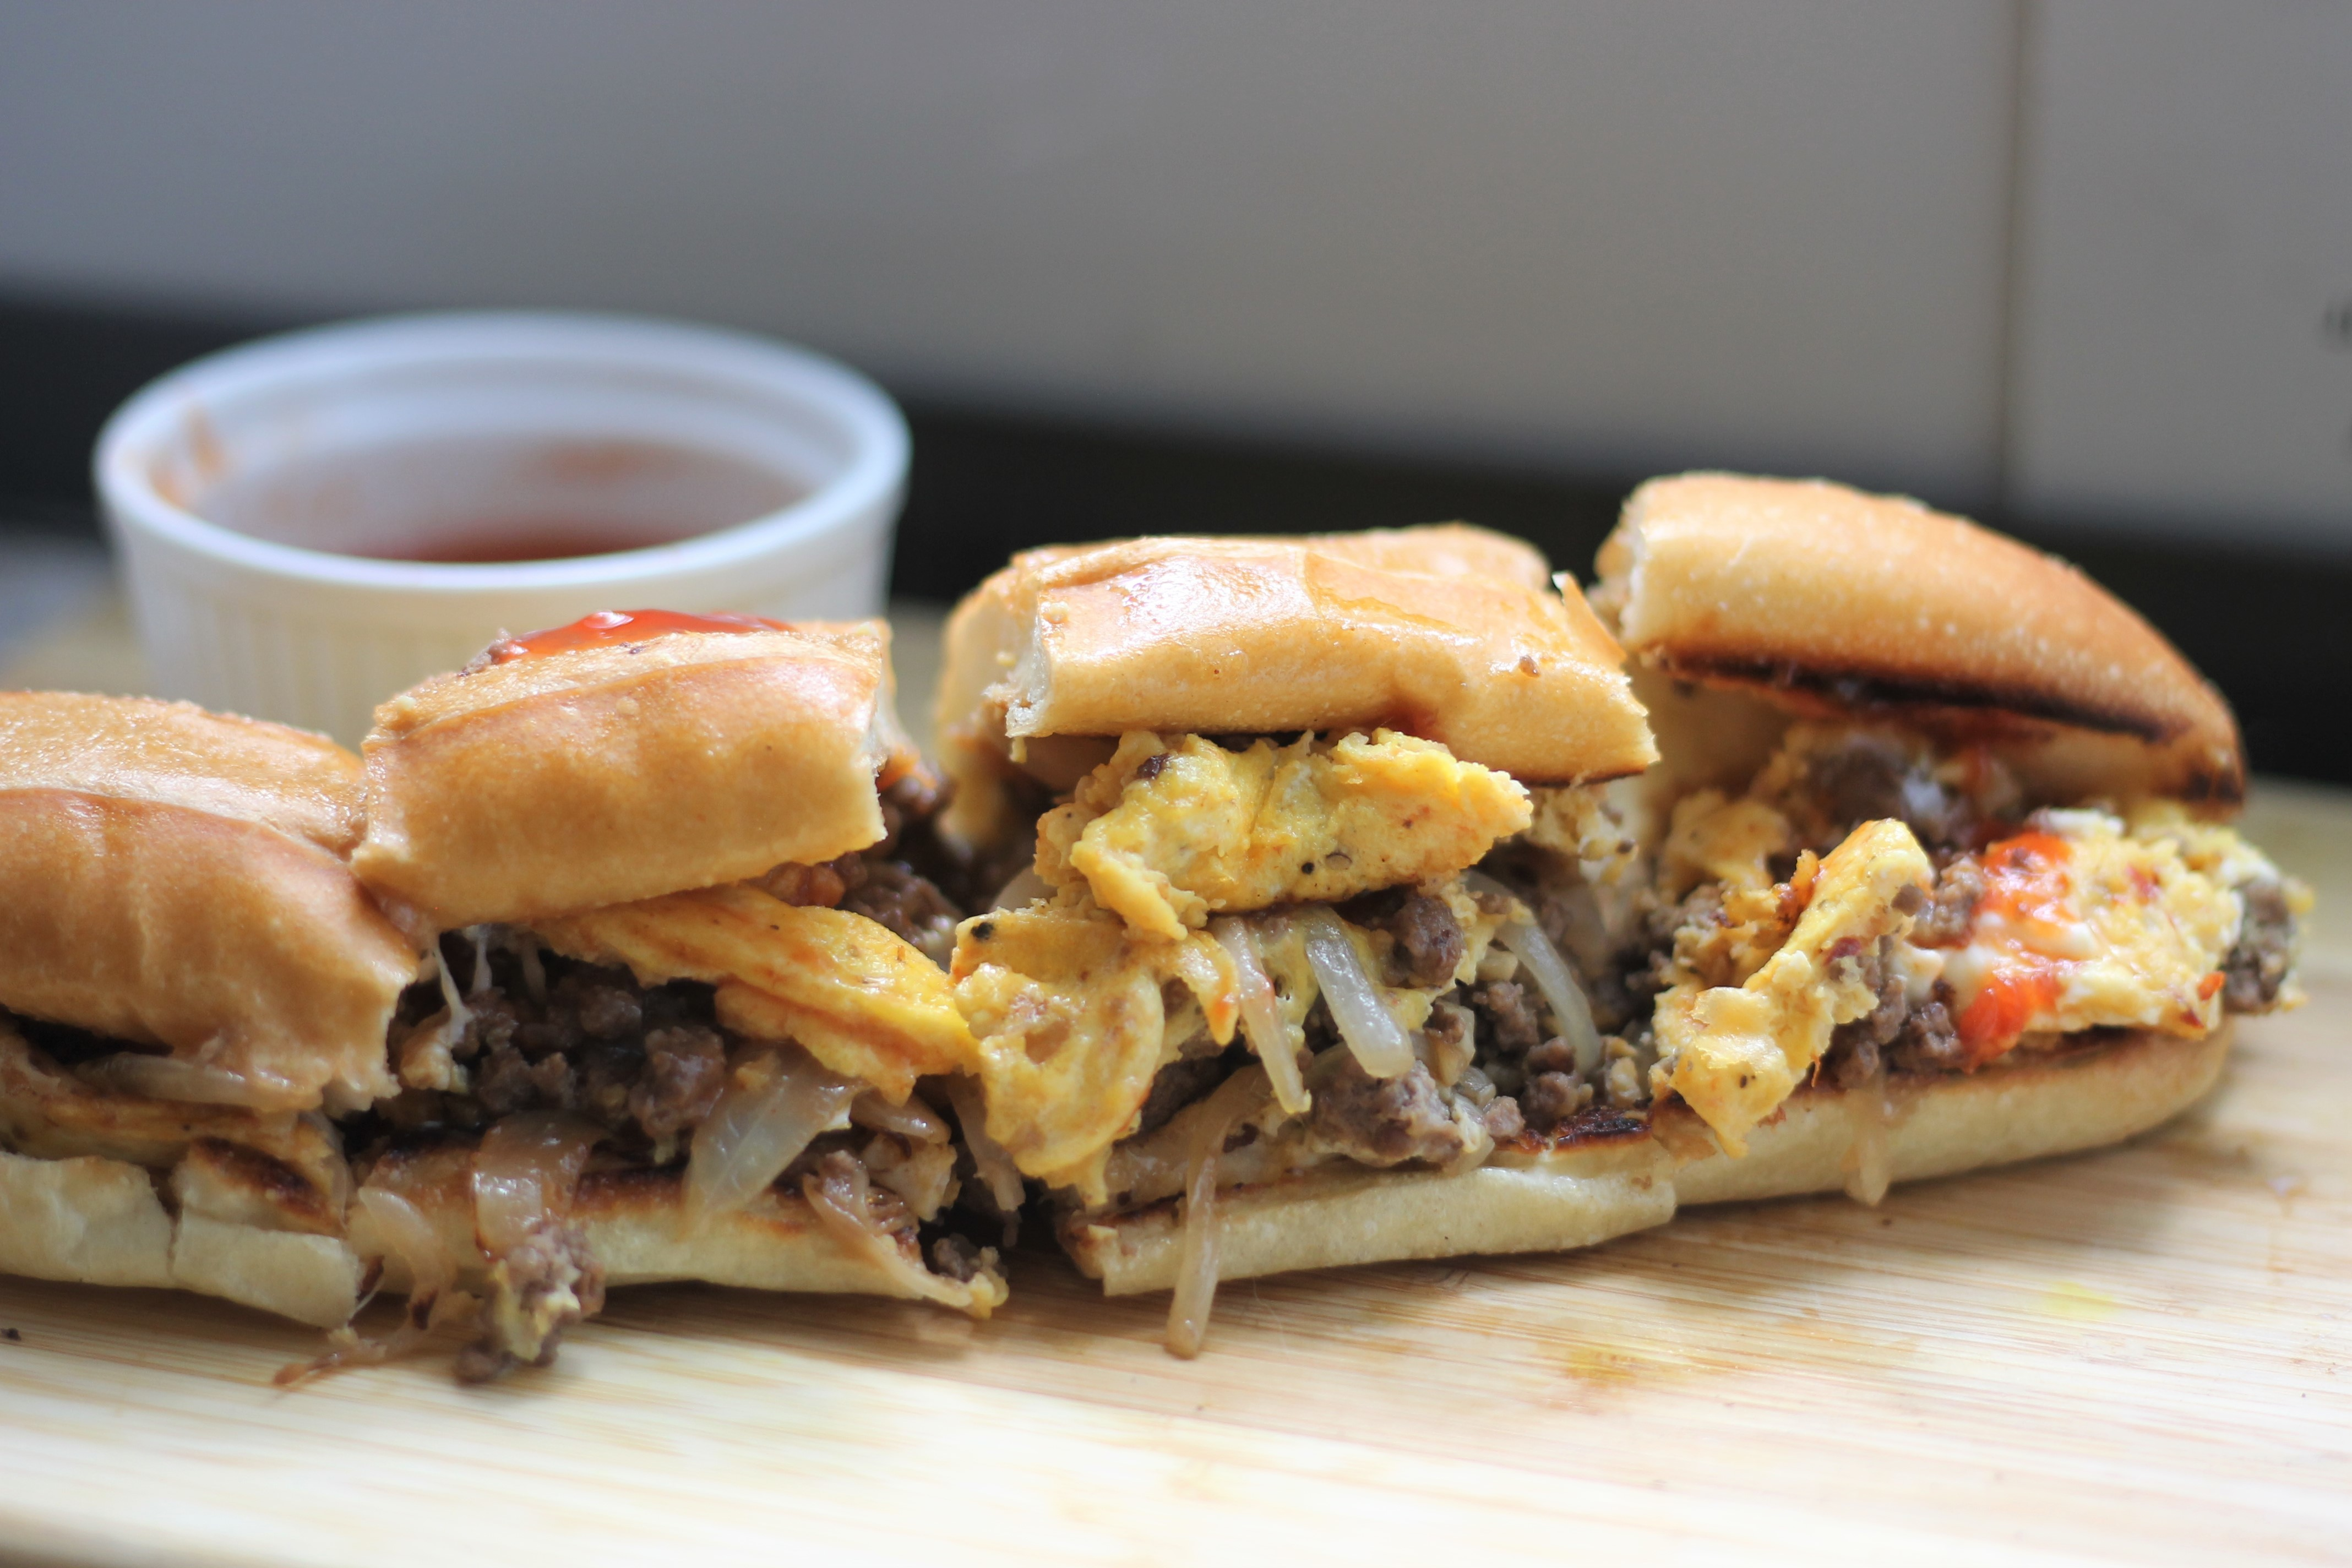 A beef and egg sandwiched placed on a wooden tray